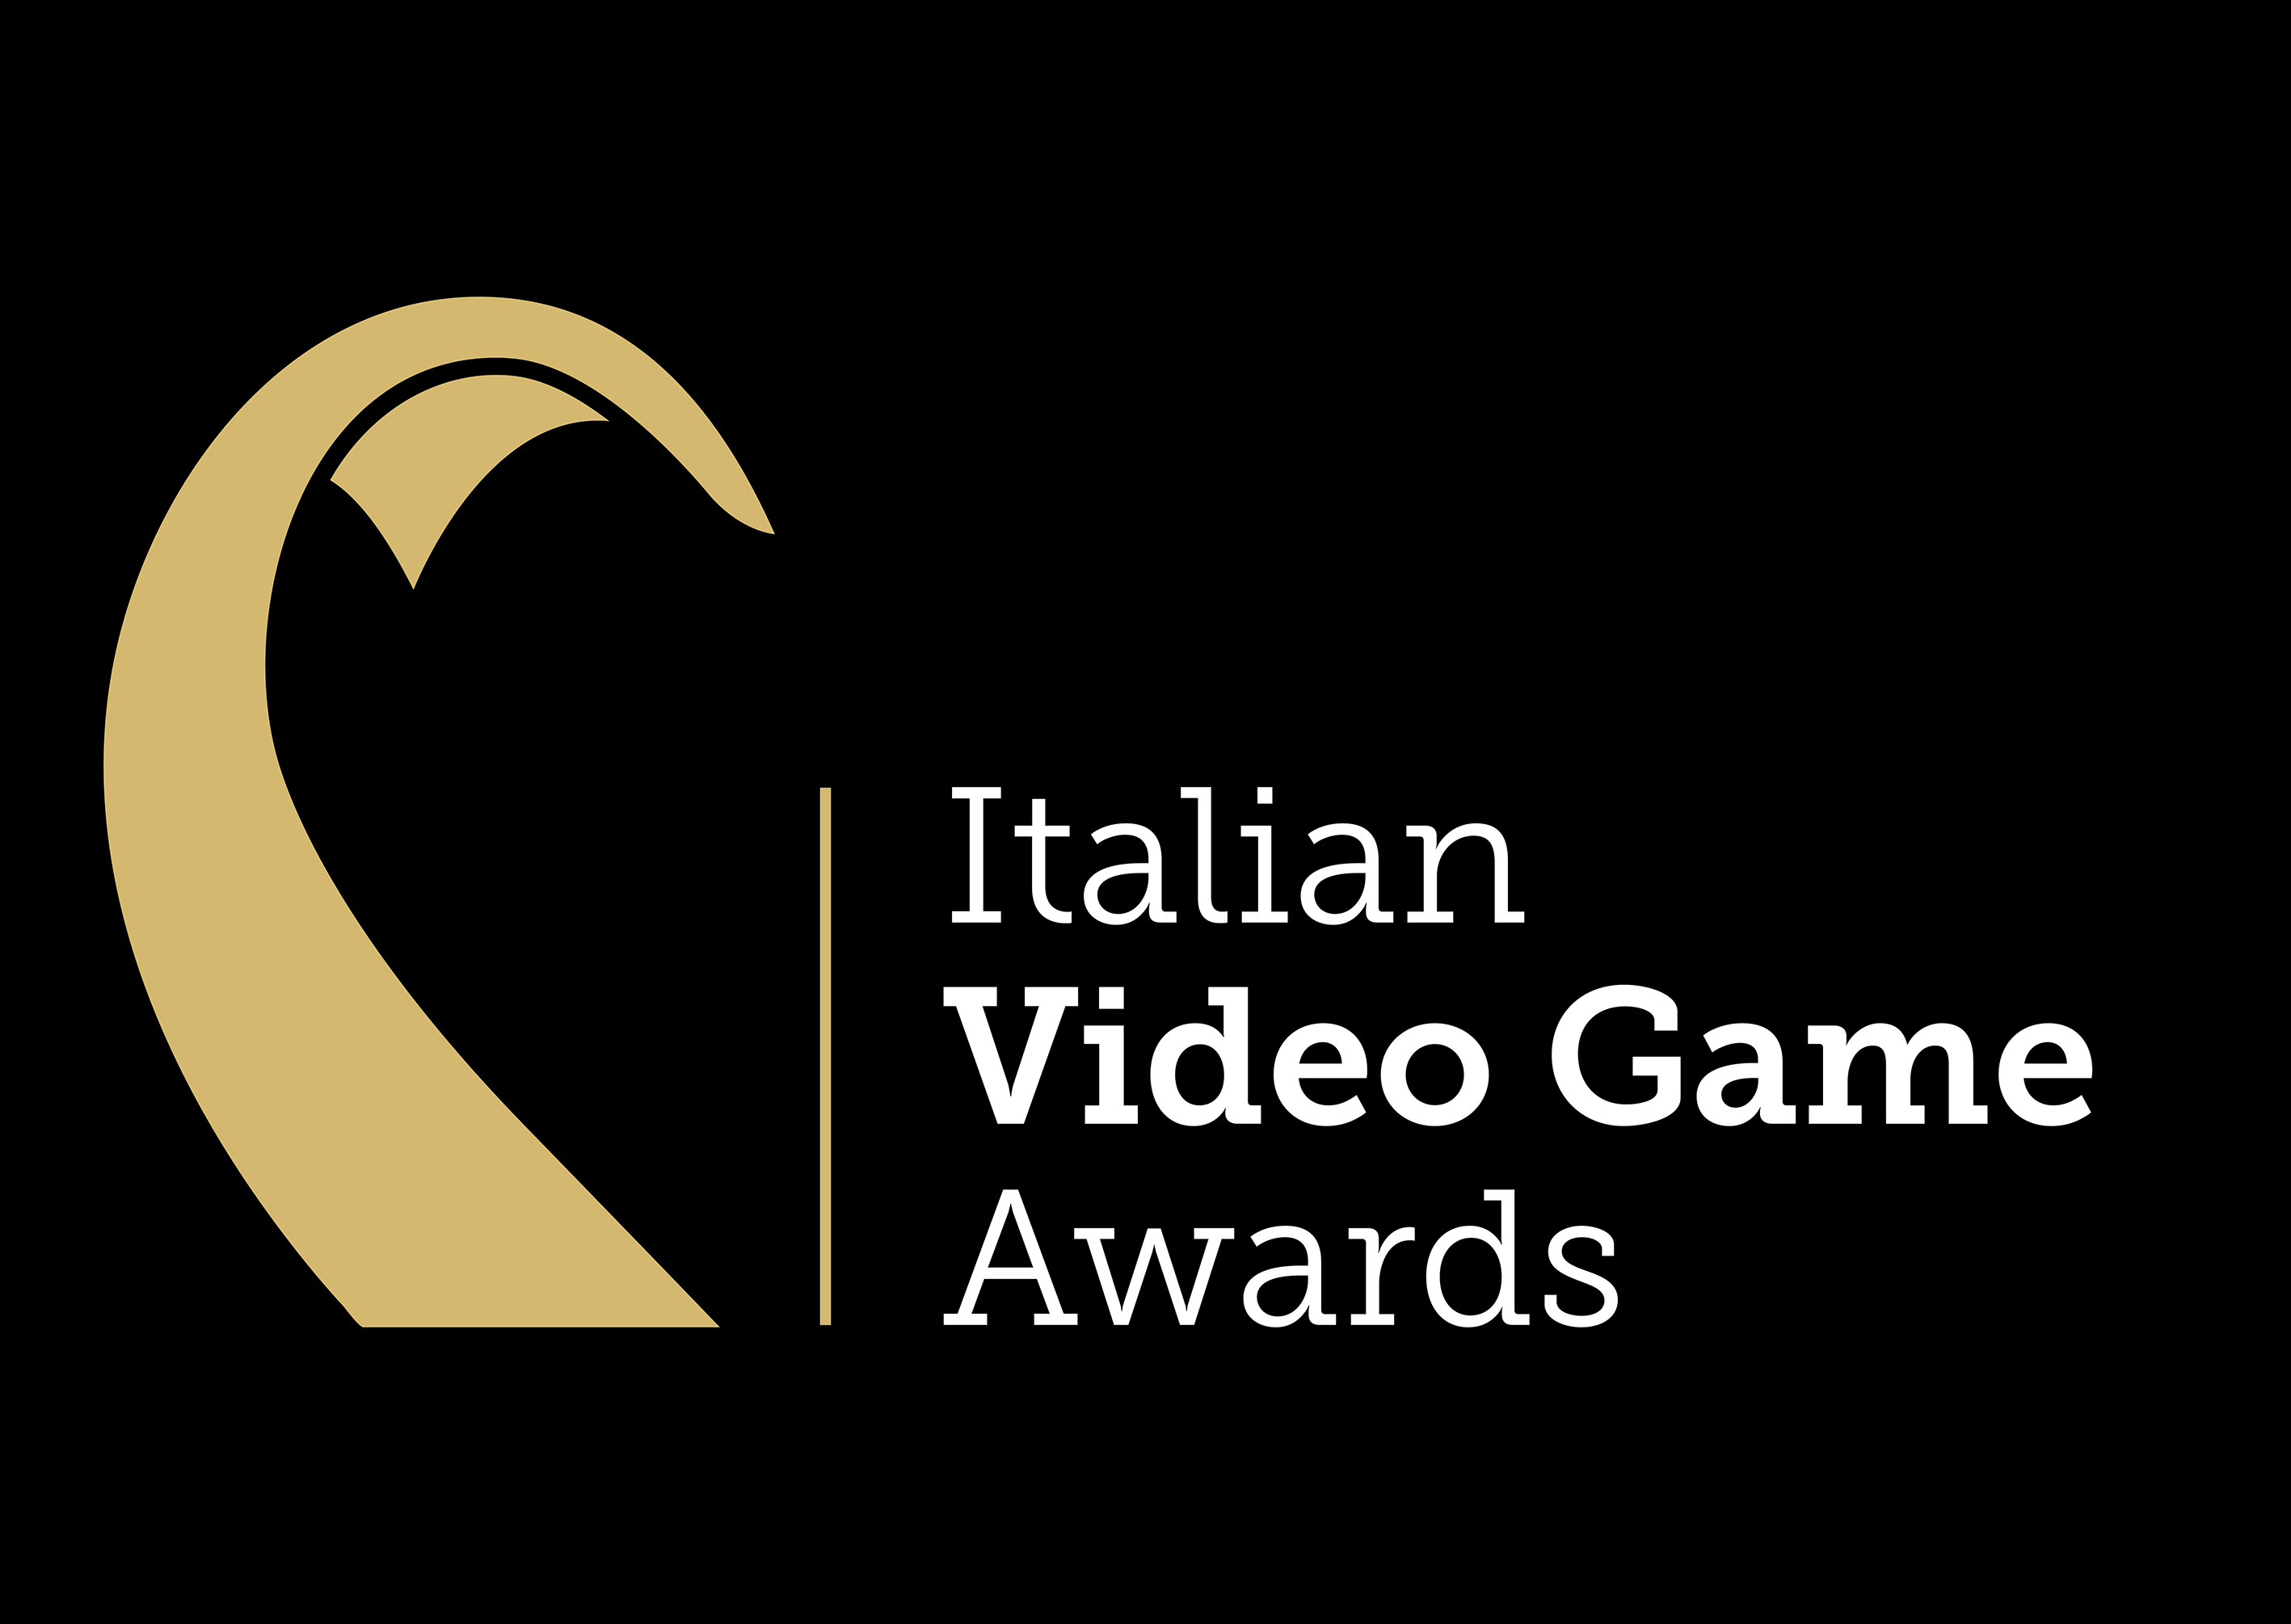 Italian Video Game Award